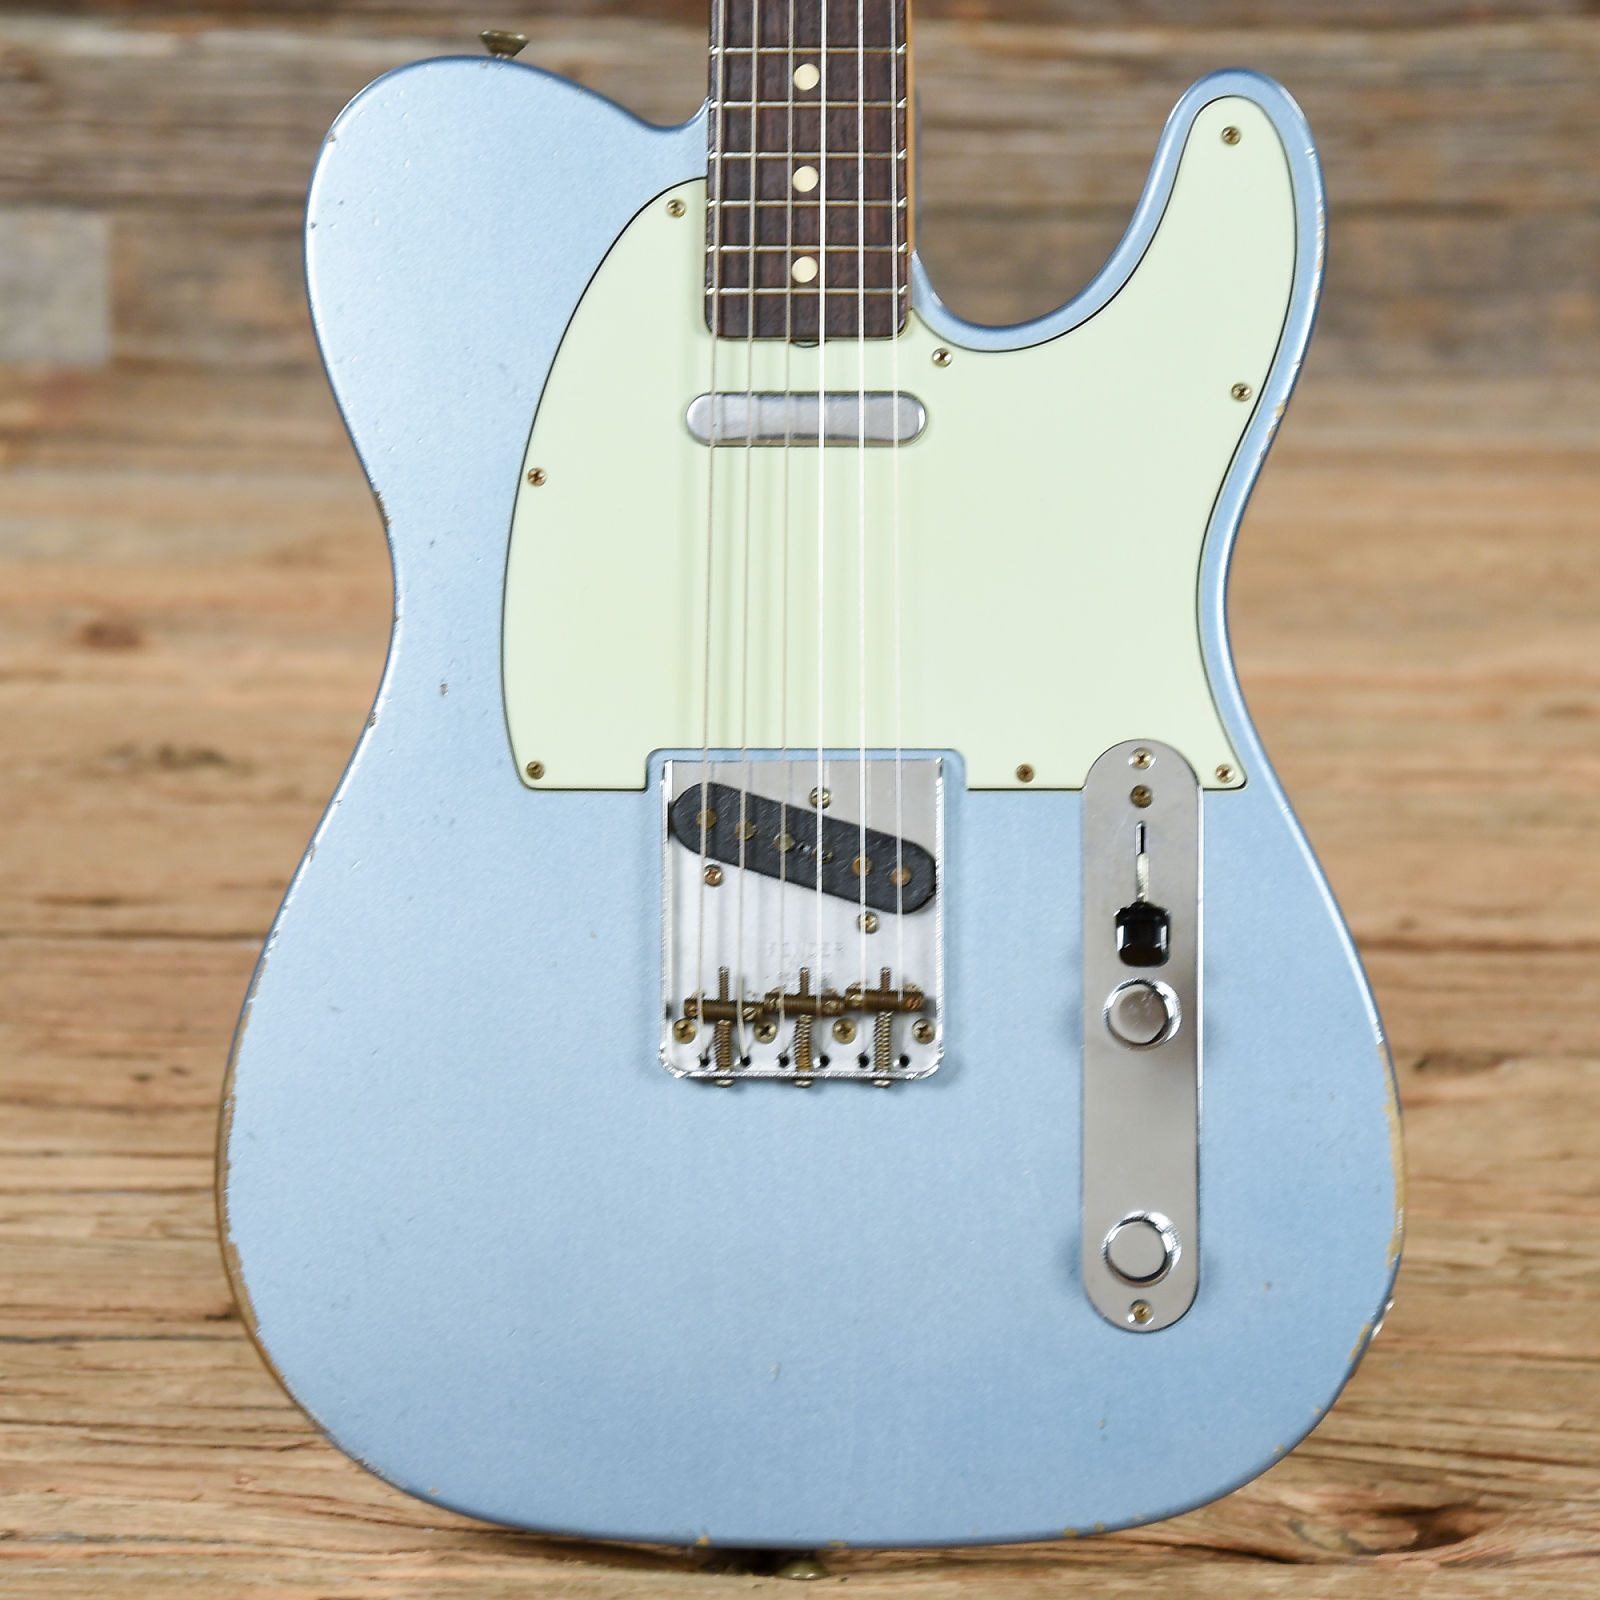 Fender Custom Shop 63 Telecaster Relic Blue Ice Metallic 2017 S743